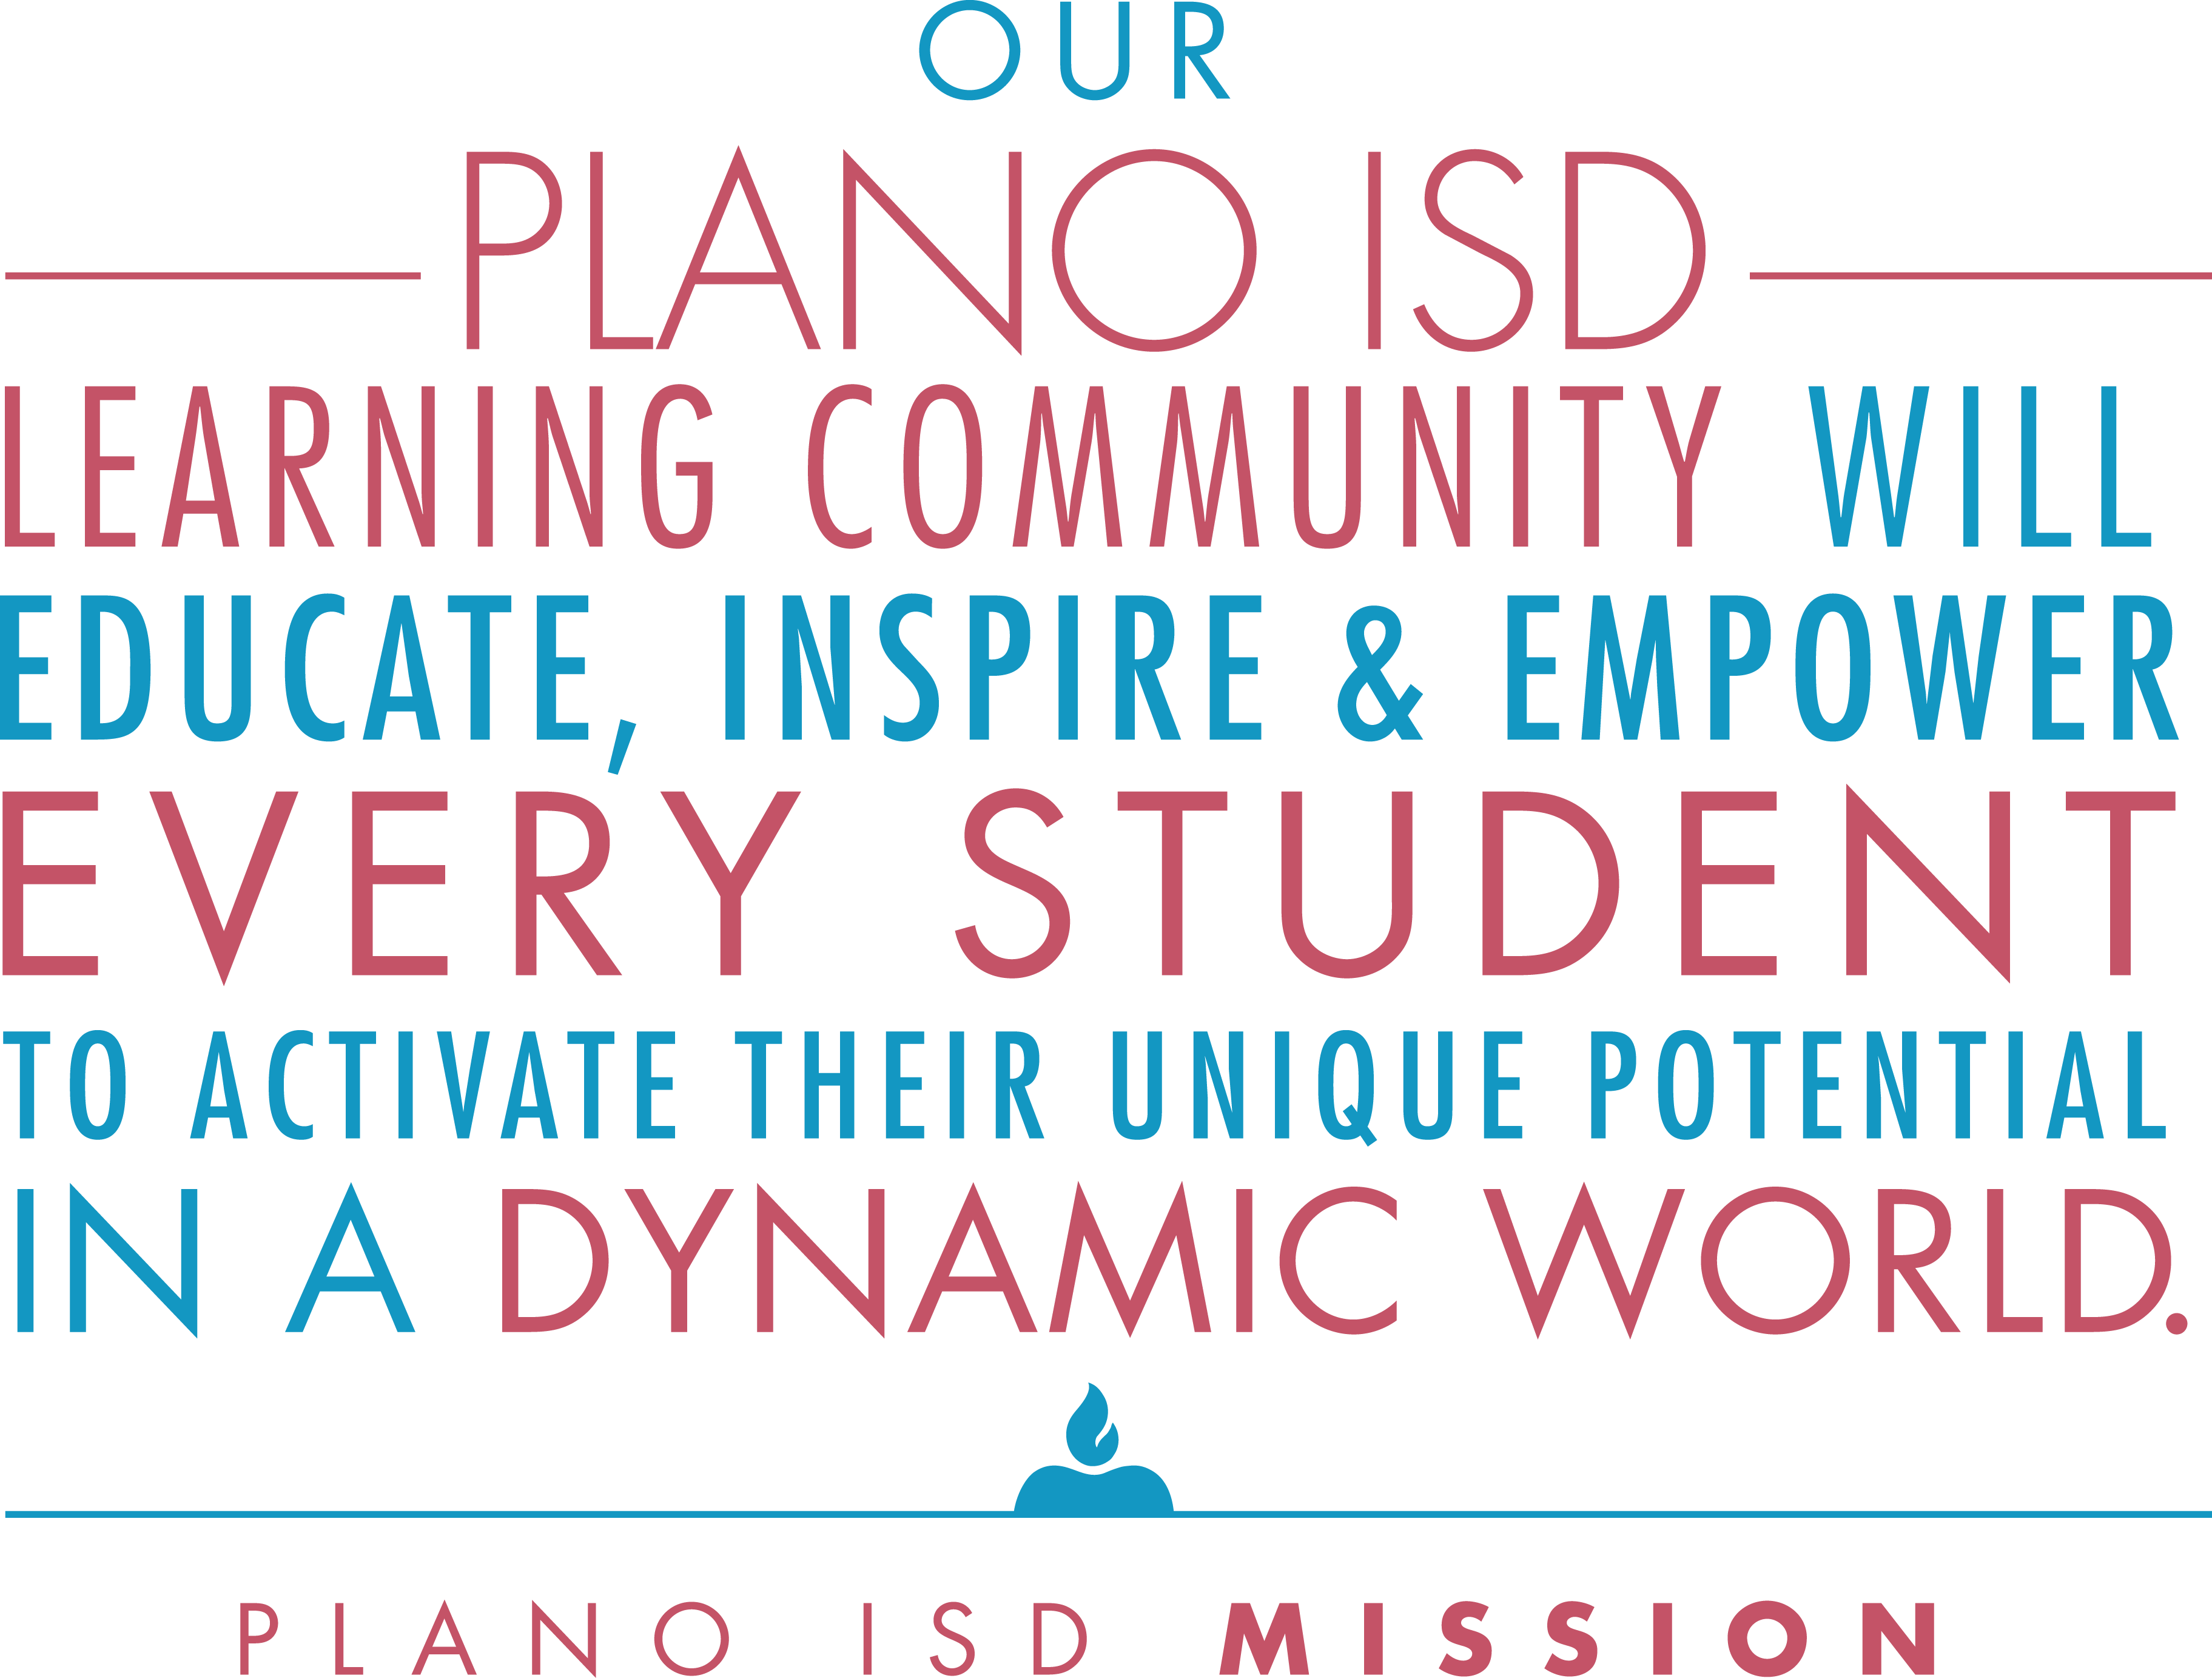 Our Plano ISD learning community will educate, inspire and empower every student to activate their unique potential in a dynamic world.